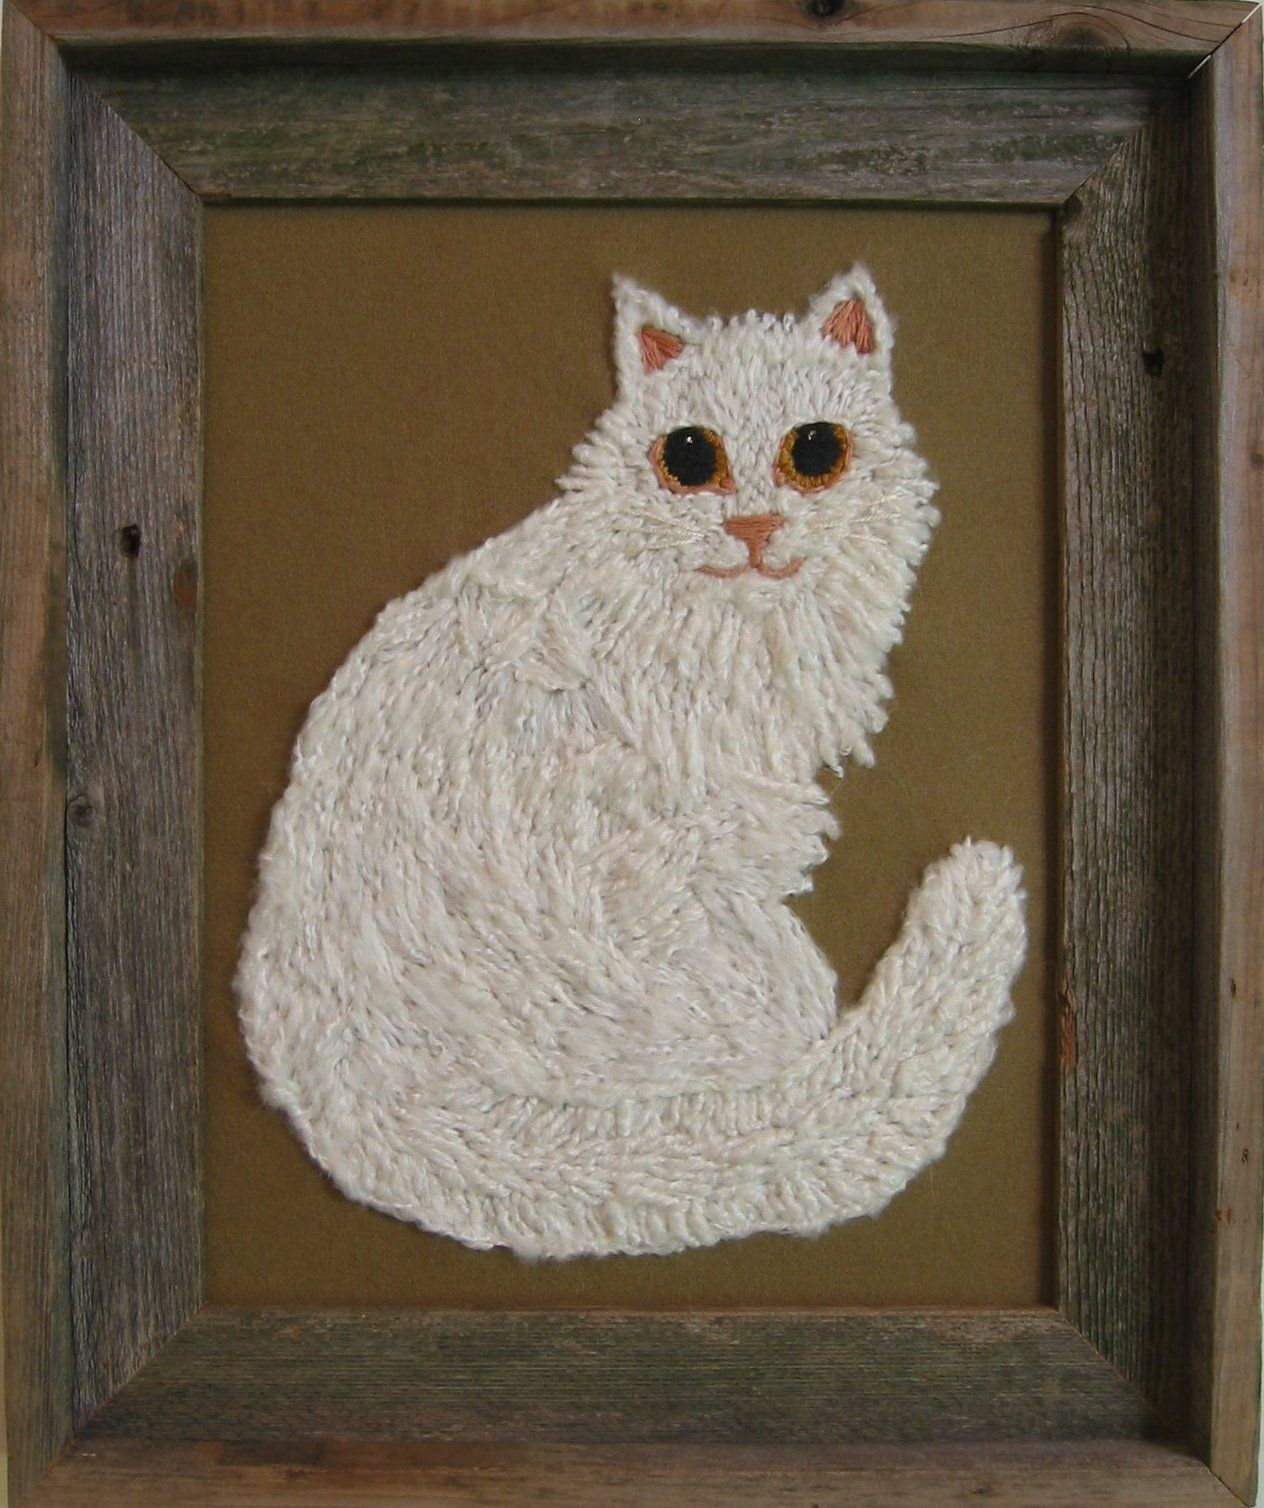 Mohair harn was used to make this bright eyed kitty. sold.